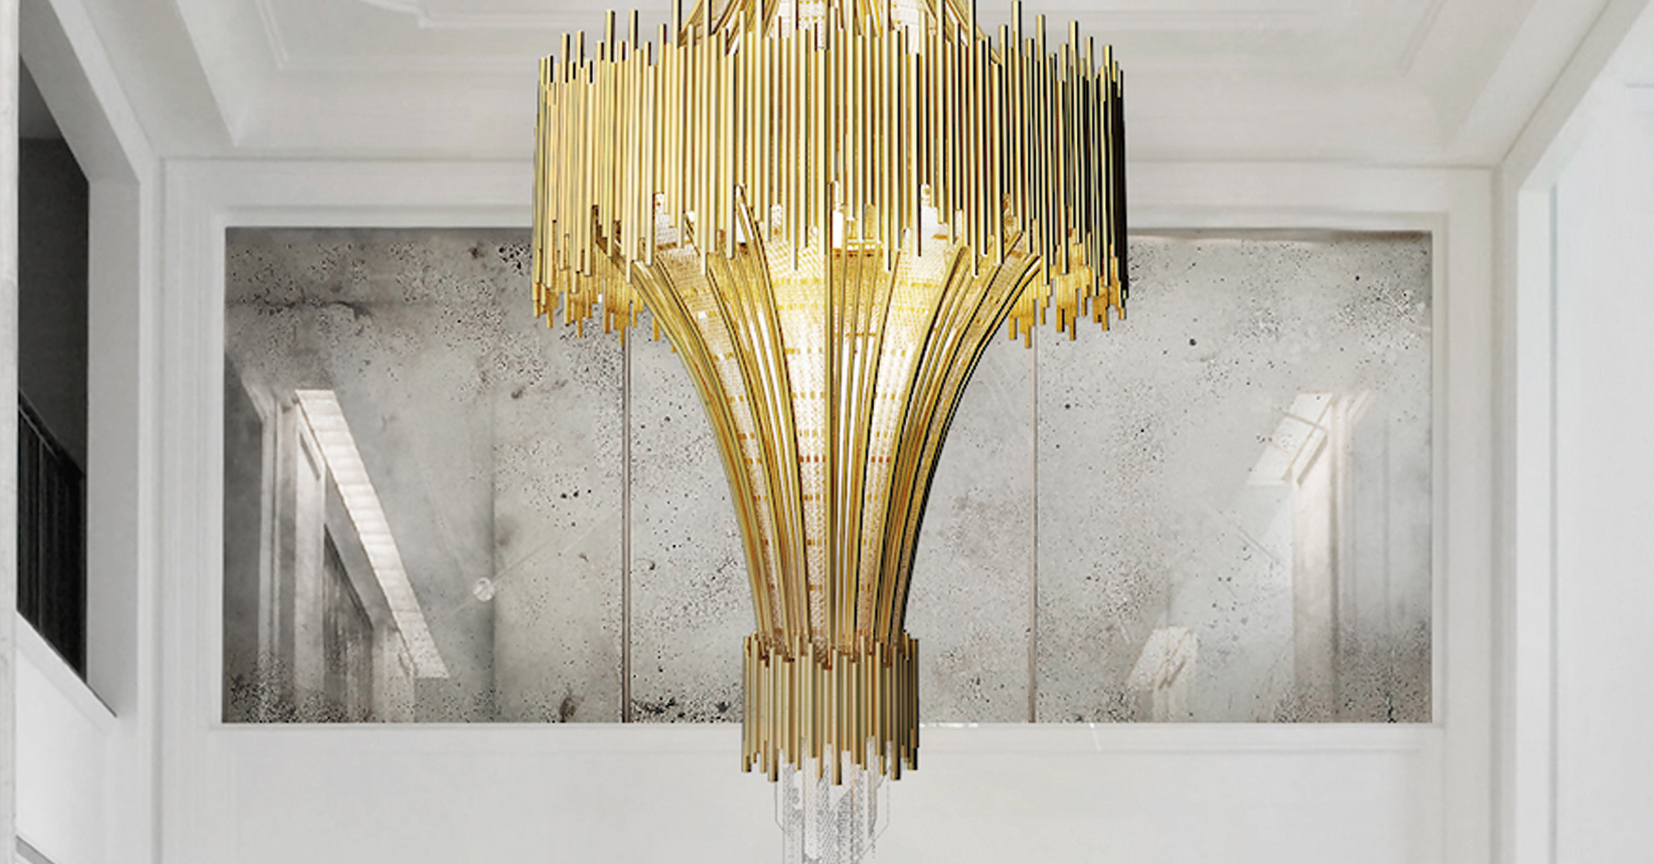 Modern Lighting: discovering Swarovski crystals chandelier in every room 5 Reasons Why You Need to Hang A Chandelier in Every Room foto nova1 chandelier in every room 5 Reasons Why You Need to Hang A Chandelier in Every Room foto nova1